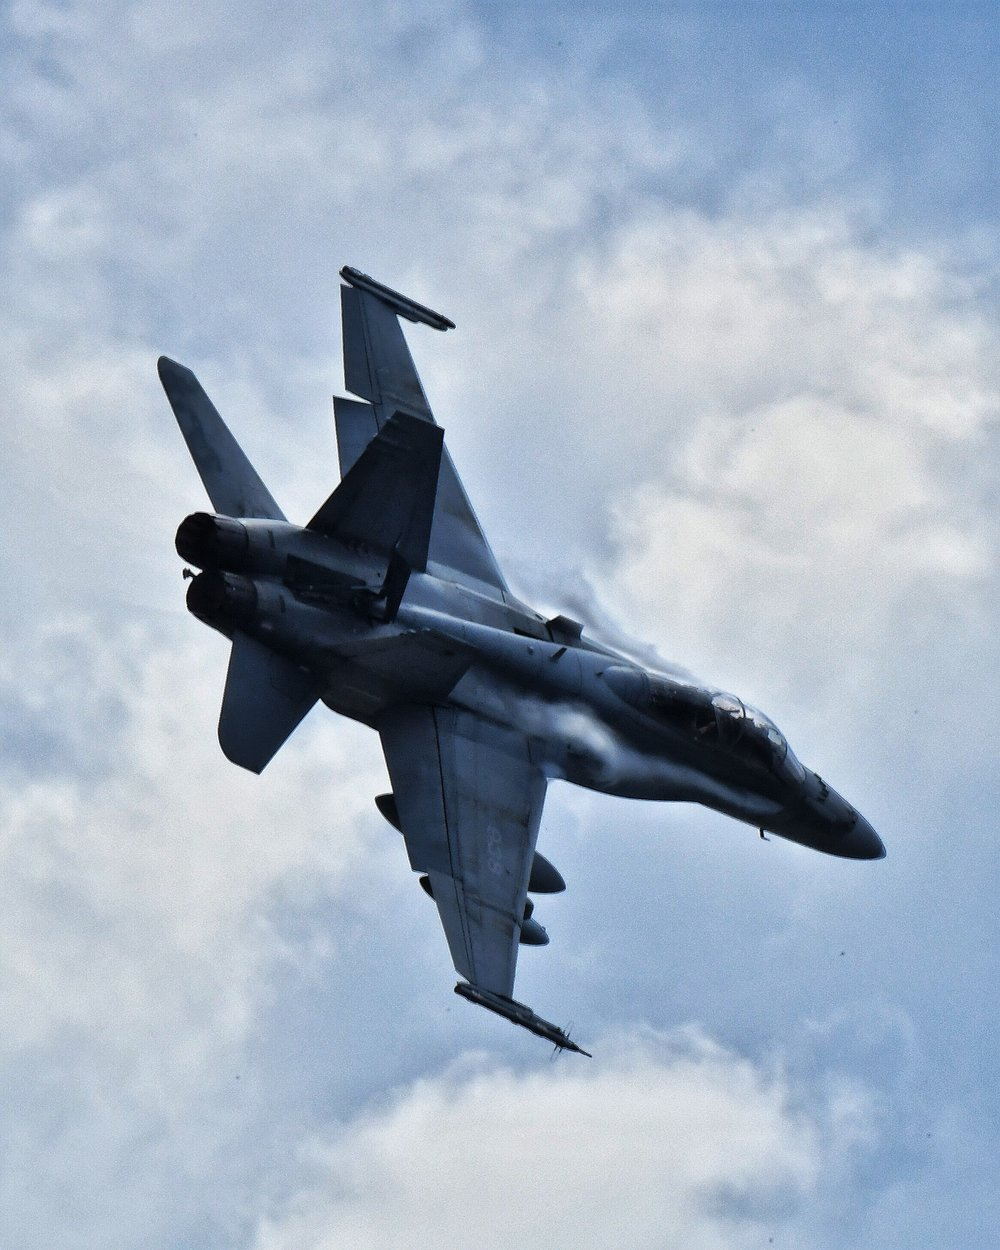 Canadian Air Force F-18